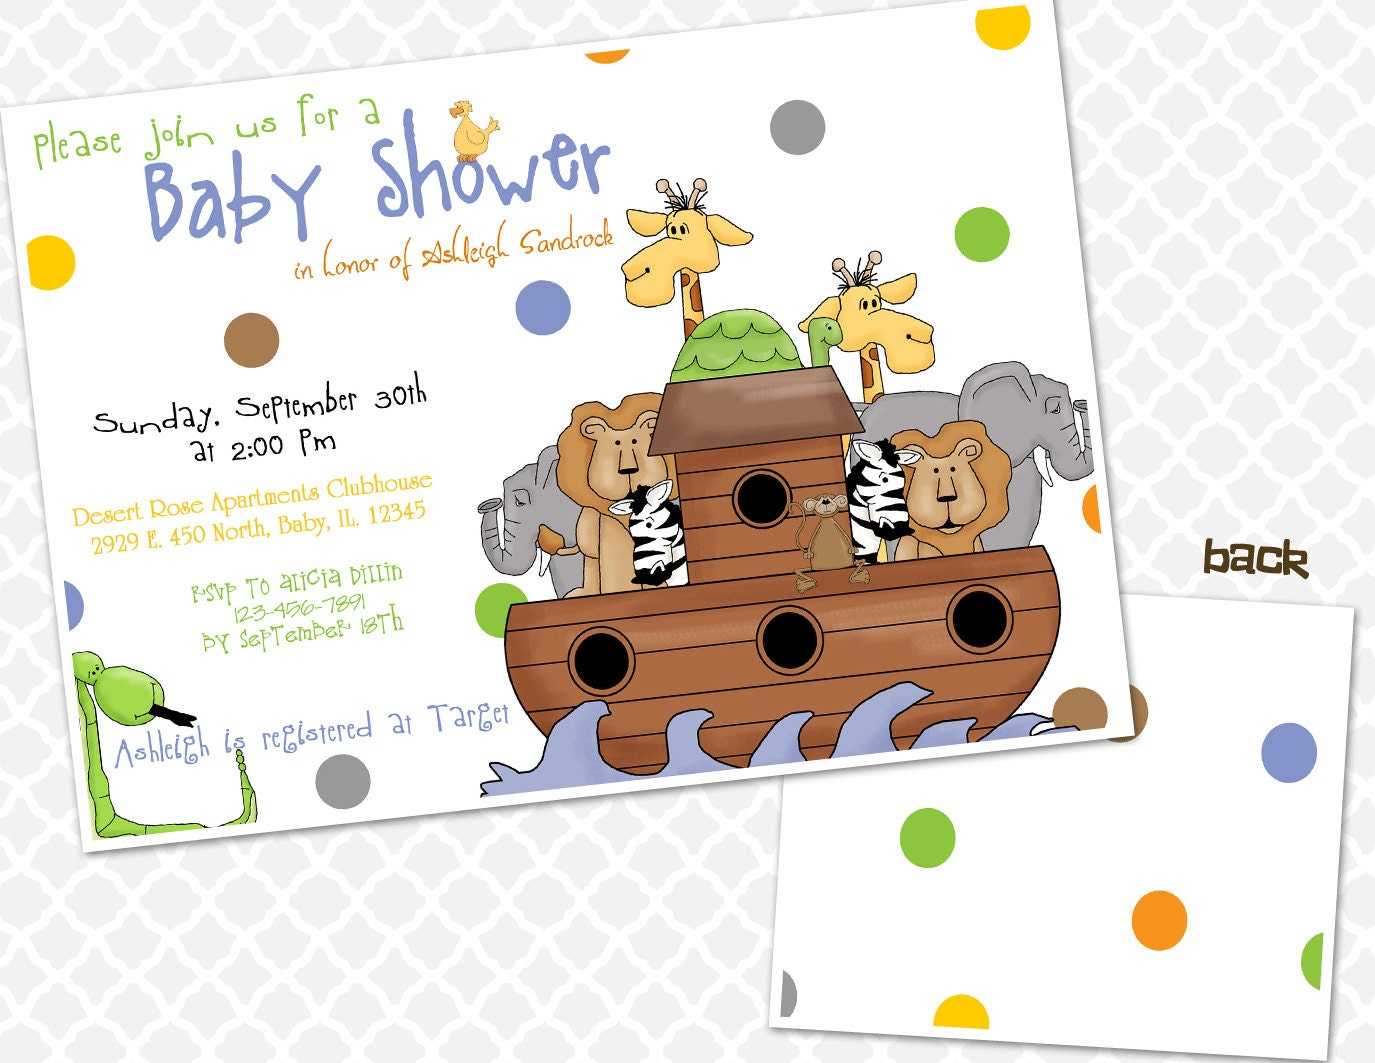 Noah39;s Ark Baby Shower Invitation Animals Baby Shower